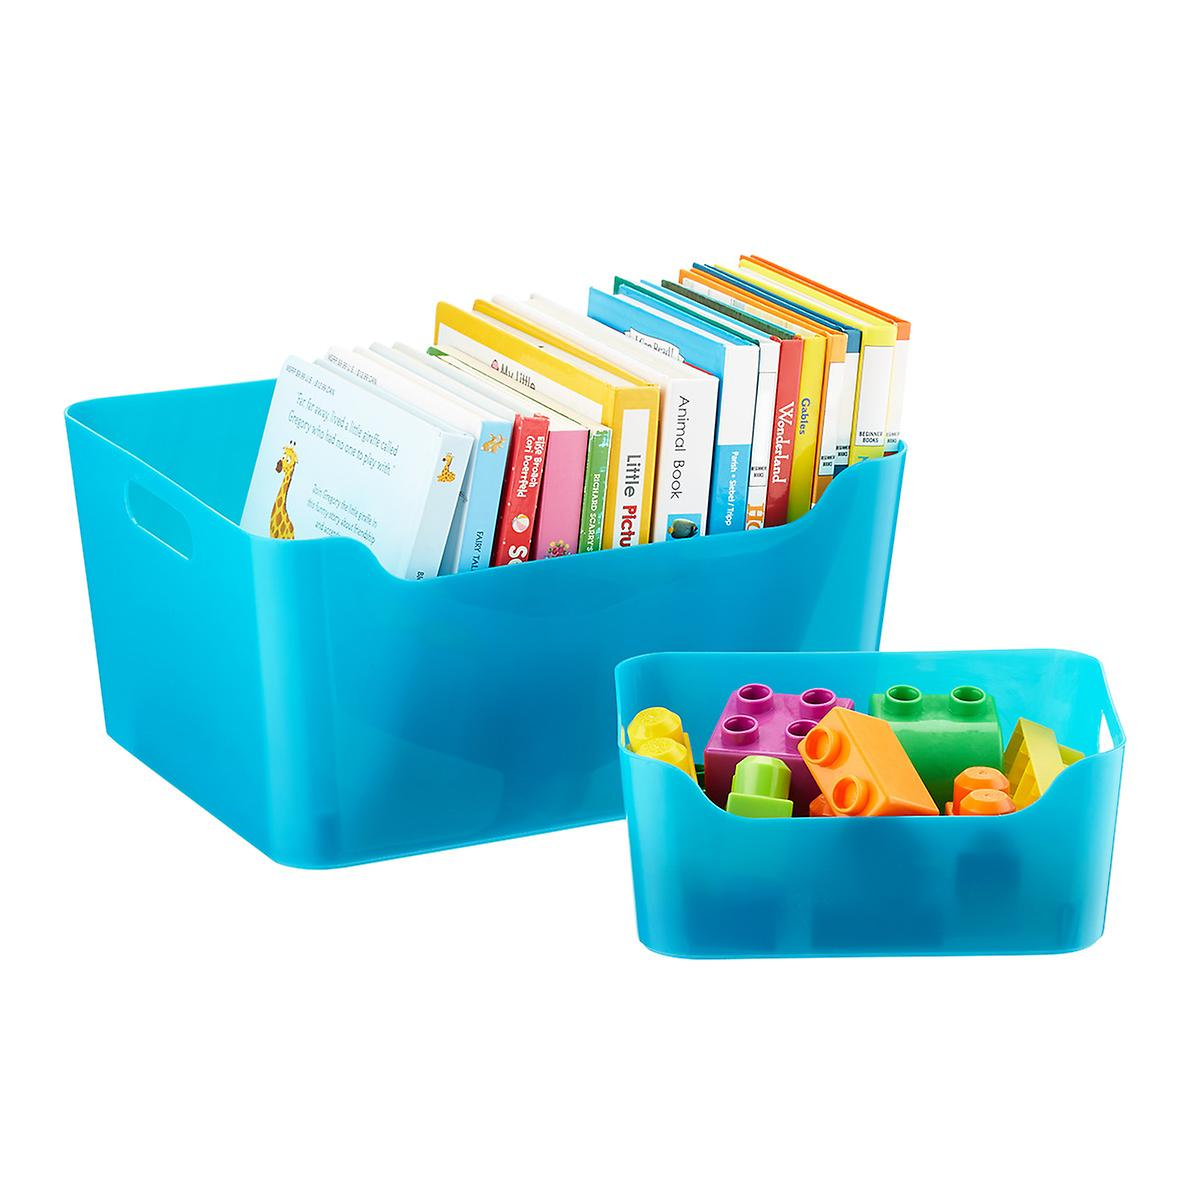 Peacock Plastic Storage Bins with Handles